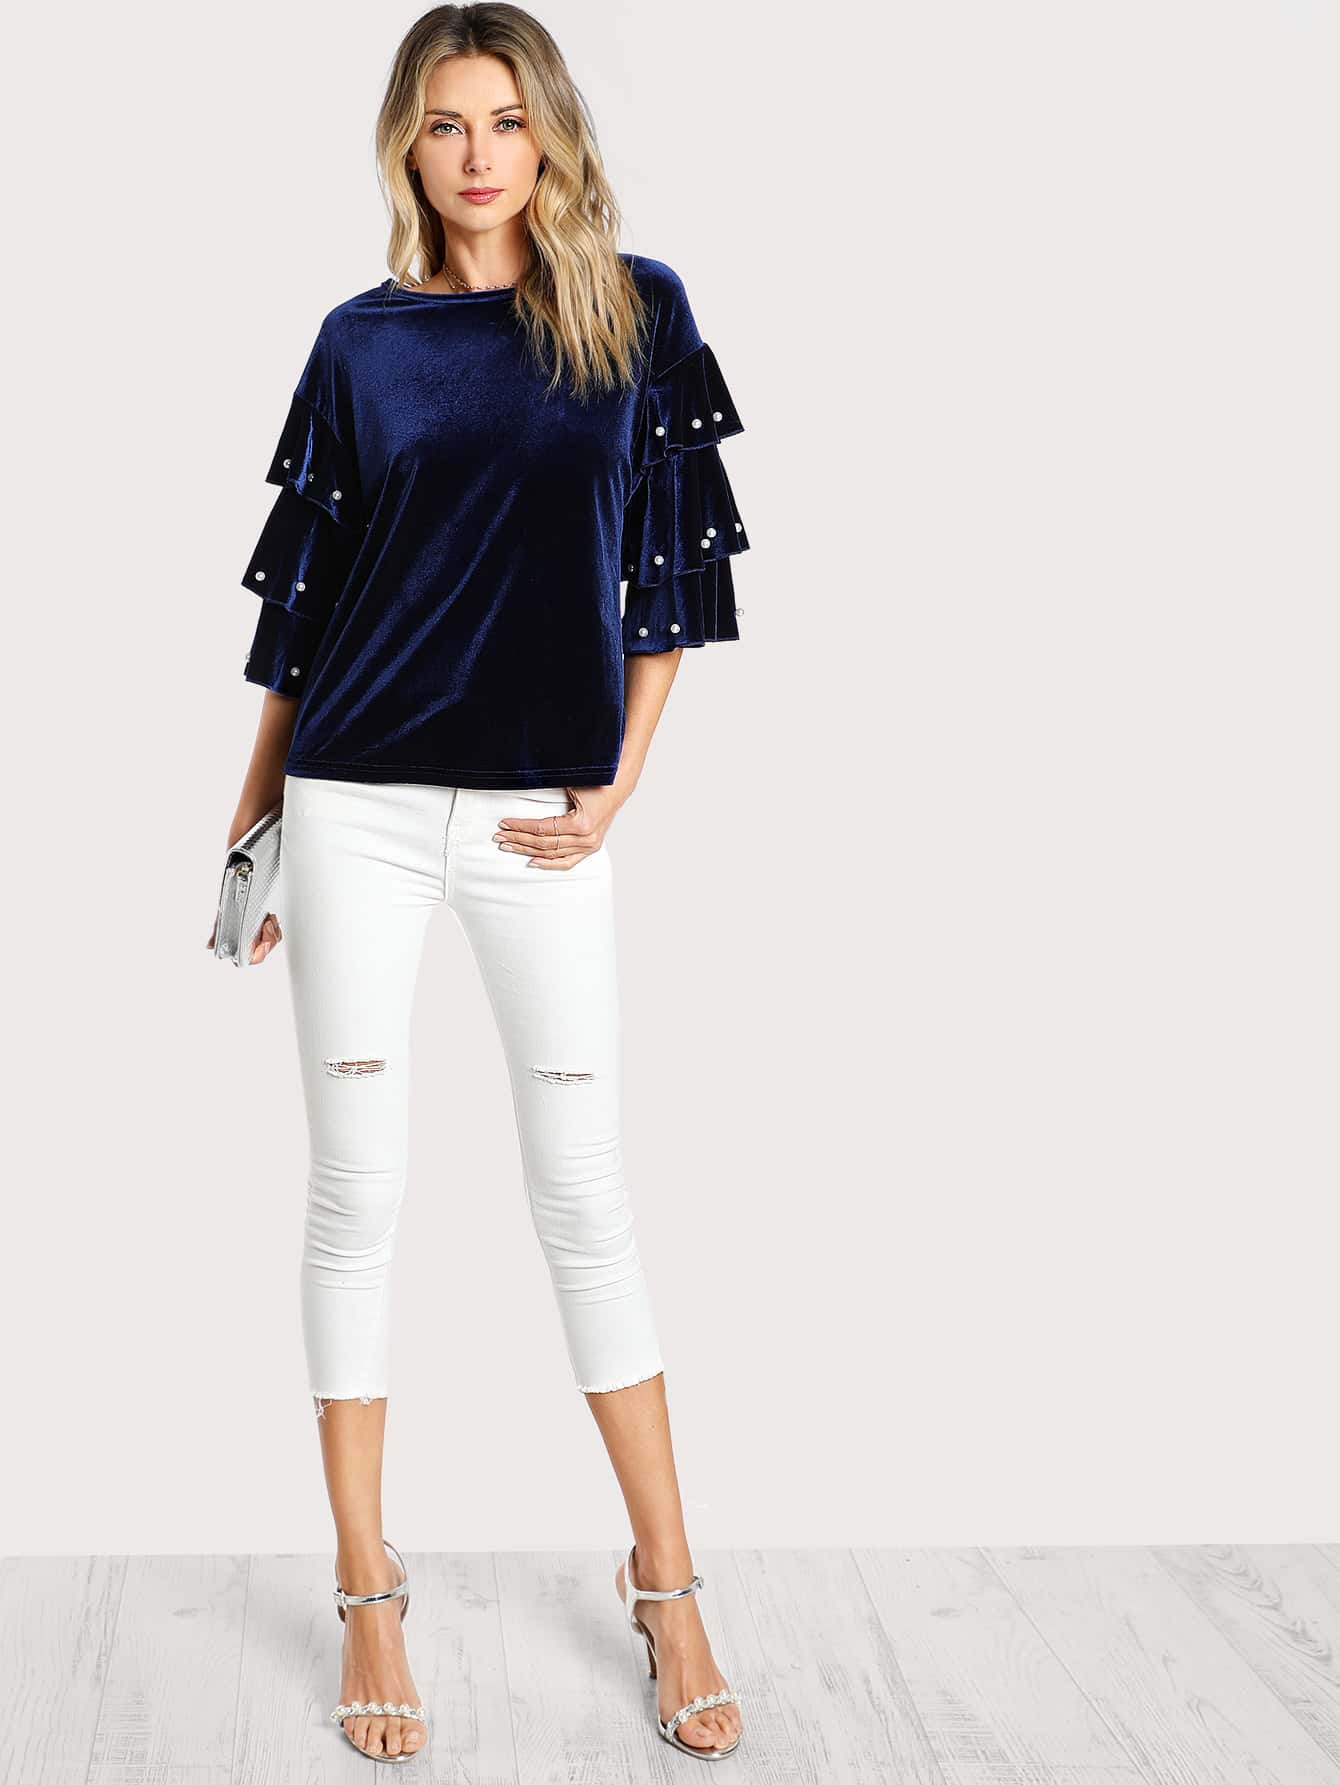 Pearl Beading Layered Sleeve Top pearl detail layered frill sleeve top